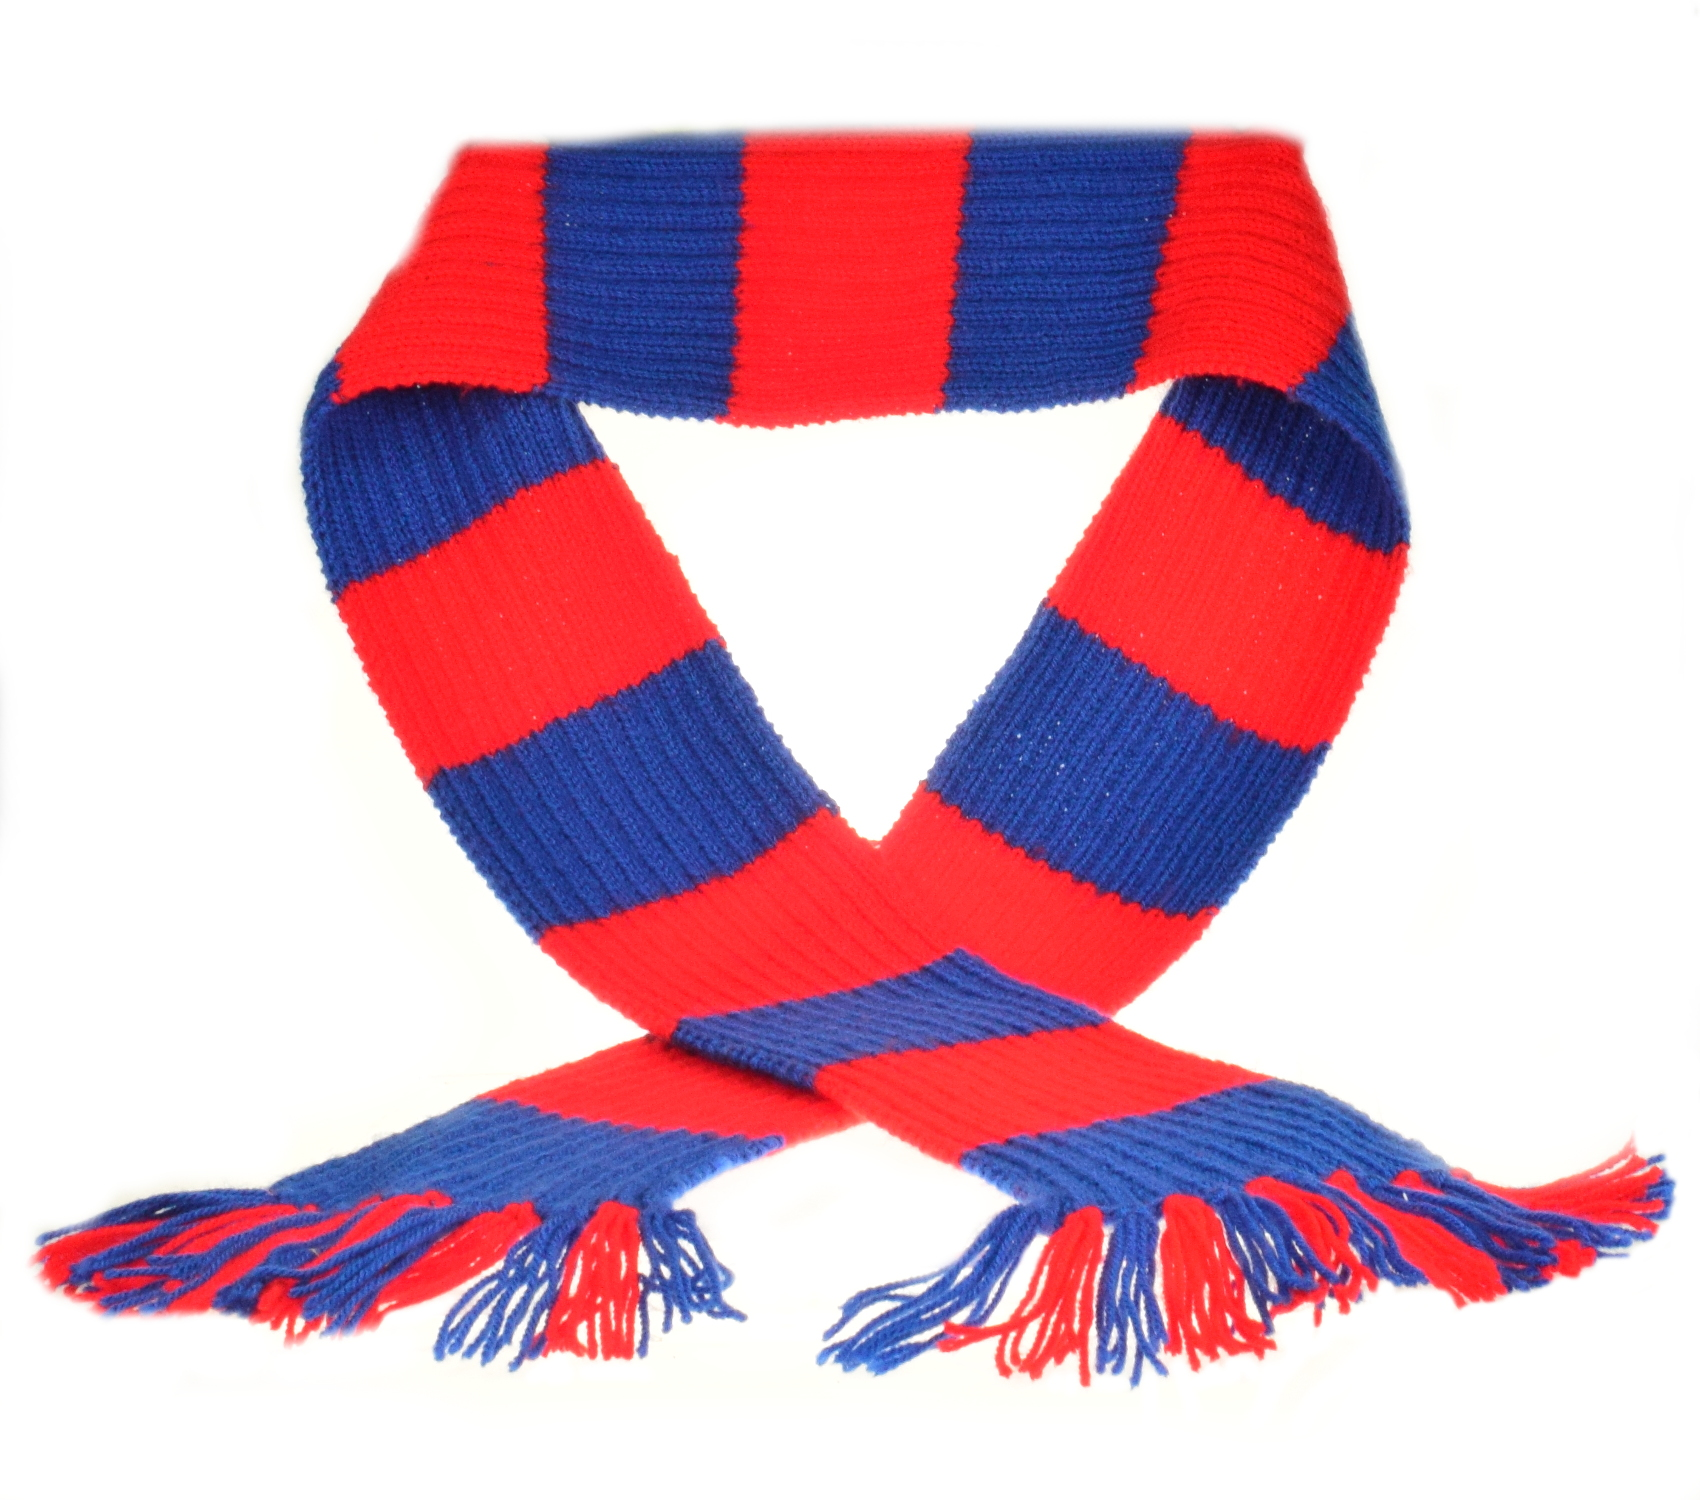 Knitting Pattern For Football Scarf : Craft Hobby Knitted Scarf Kit Premier League Football DK ...